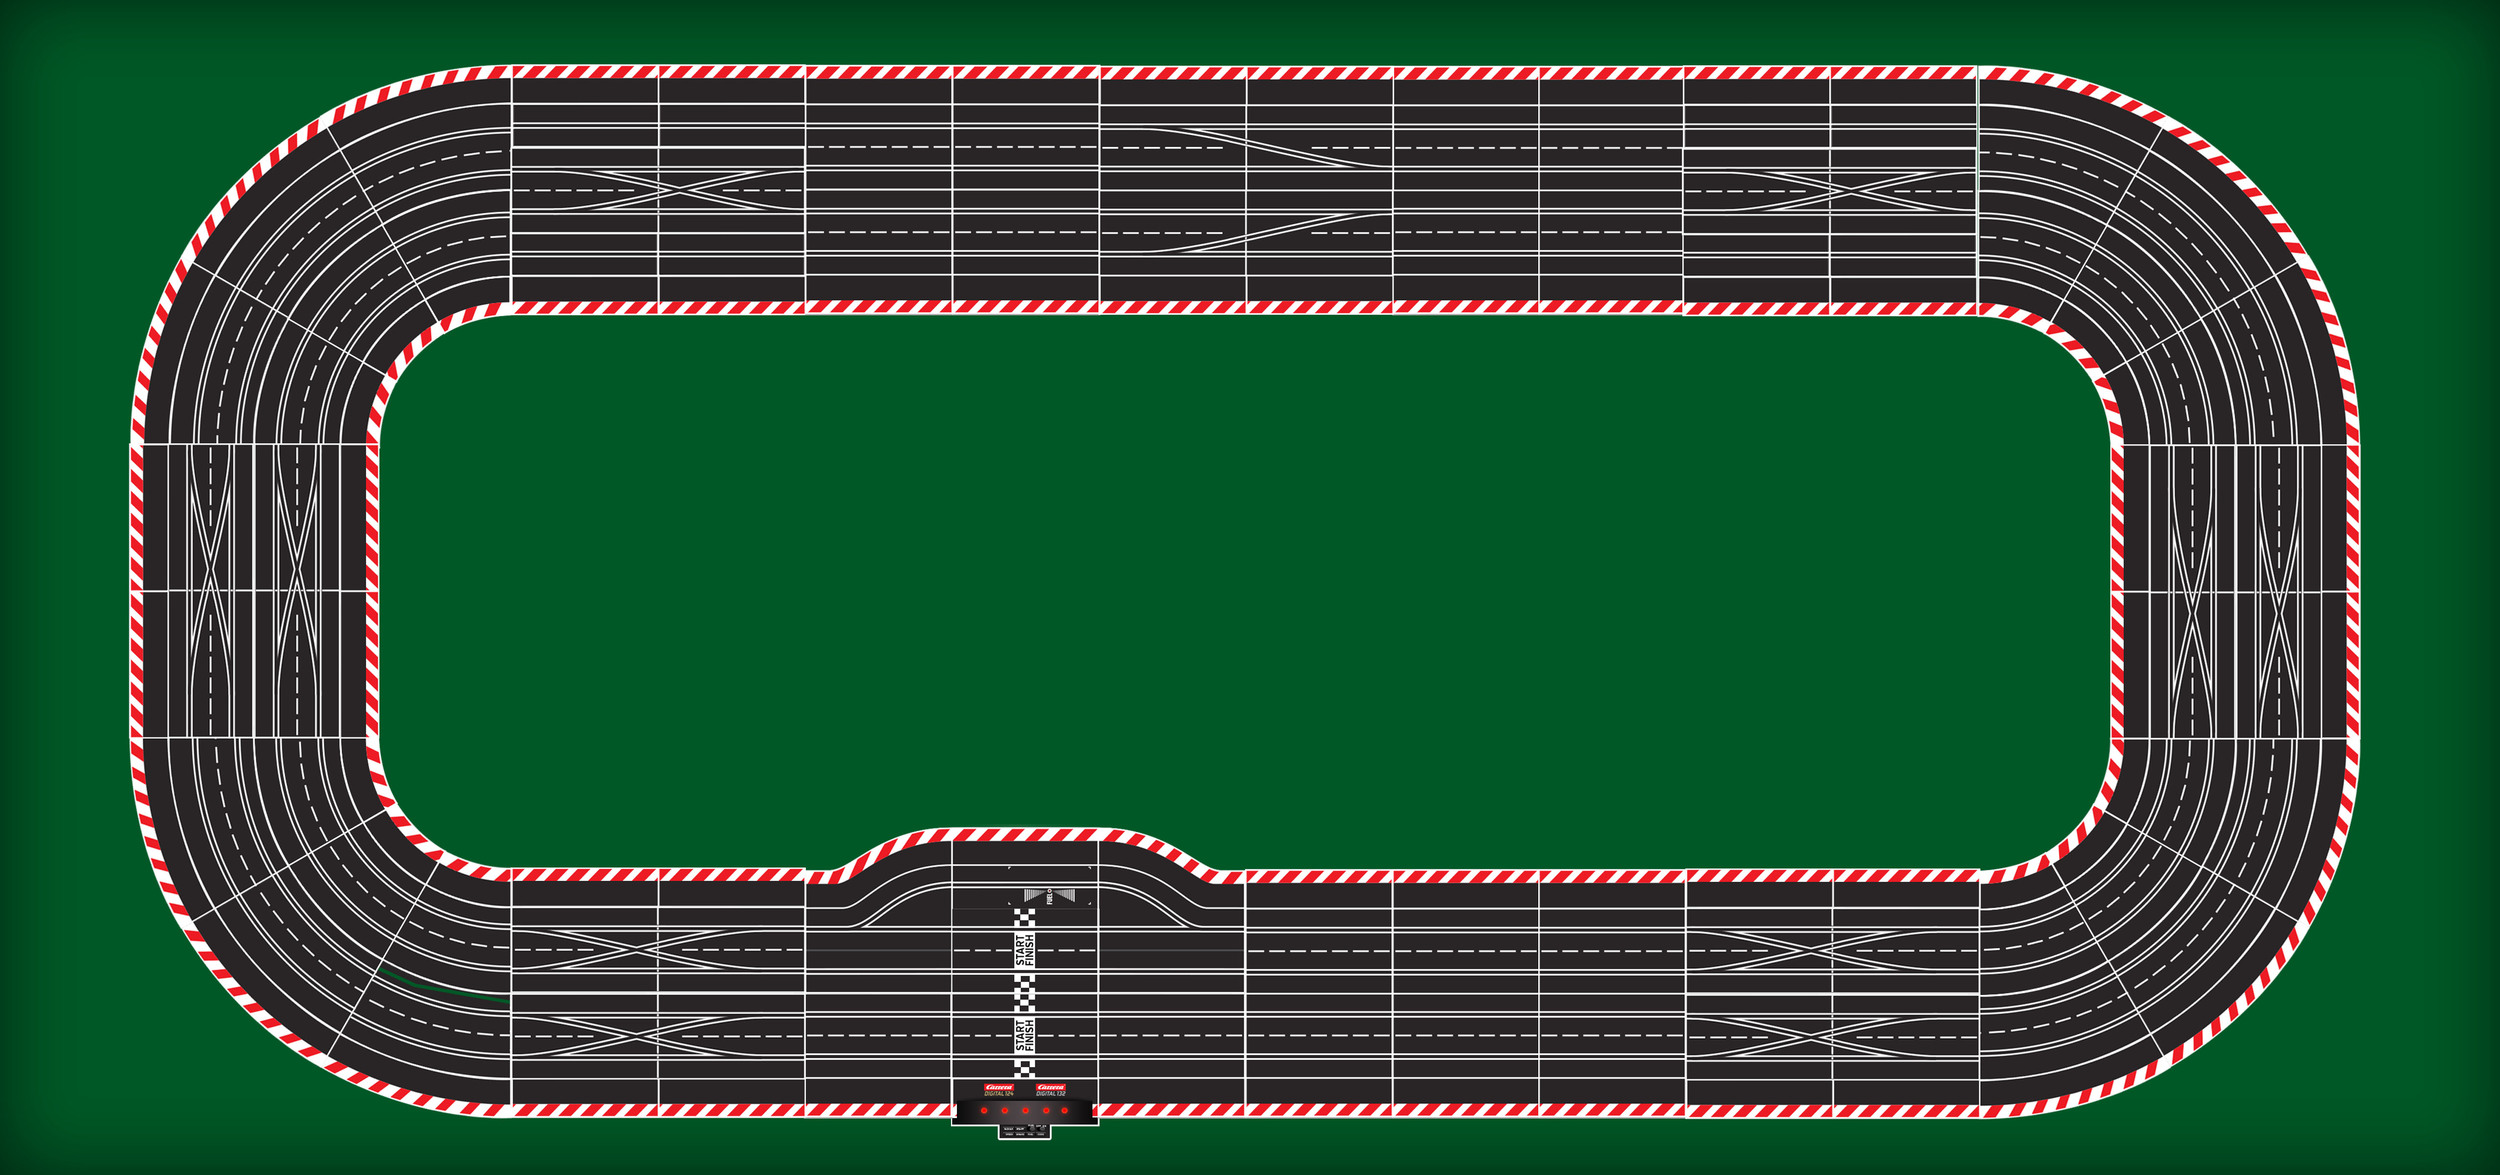 Indy Style Oval